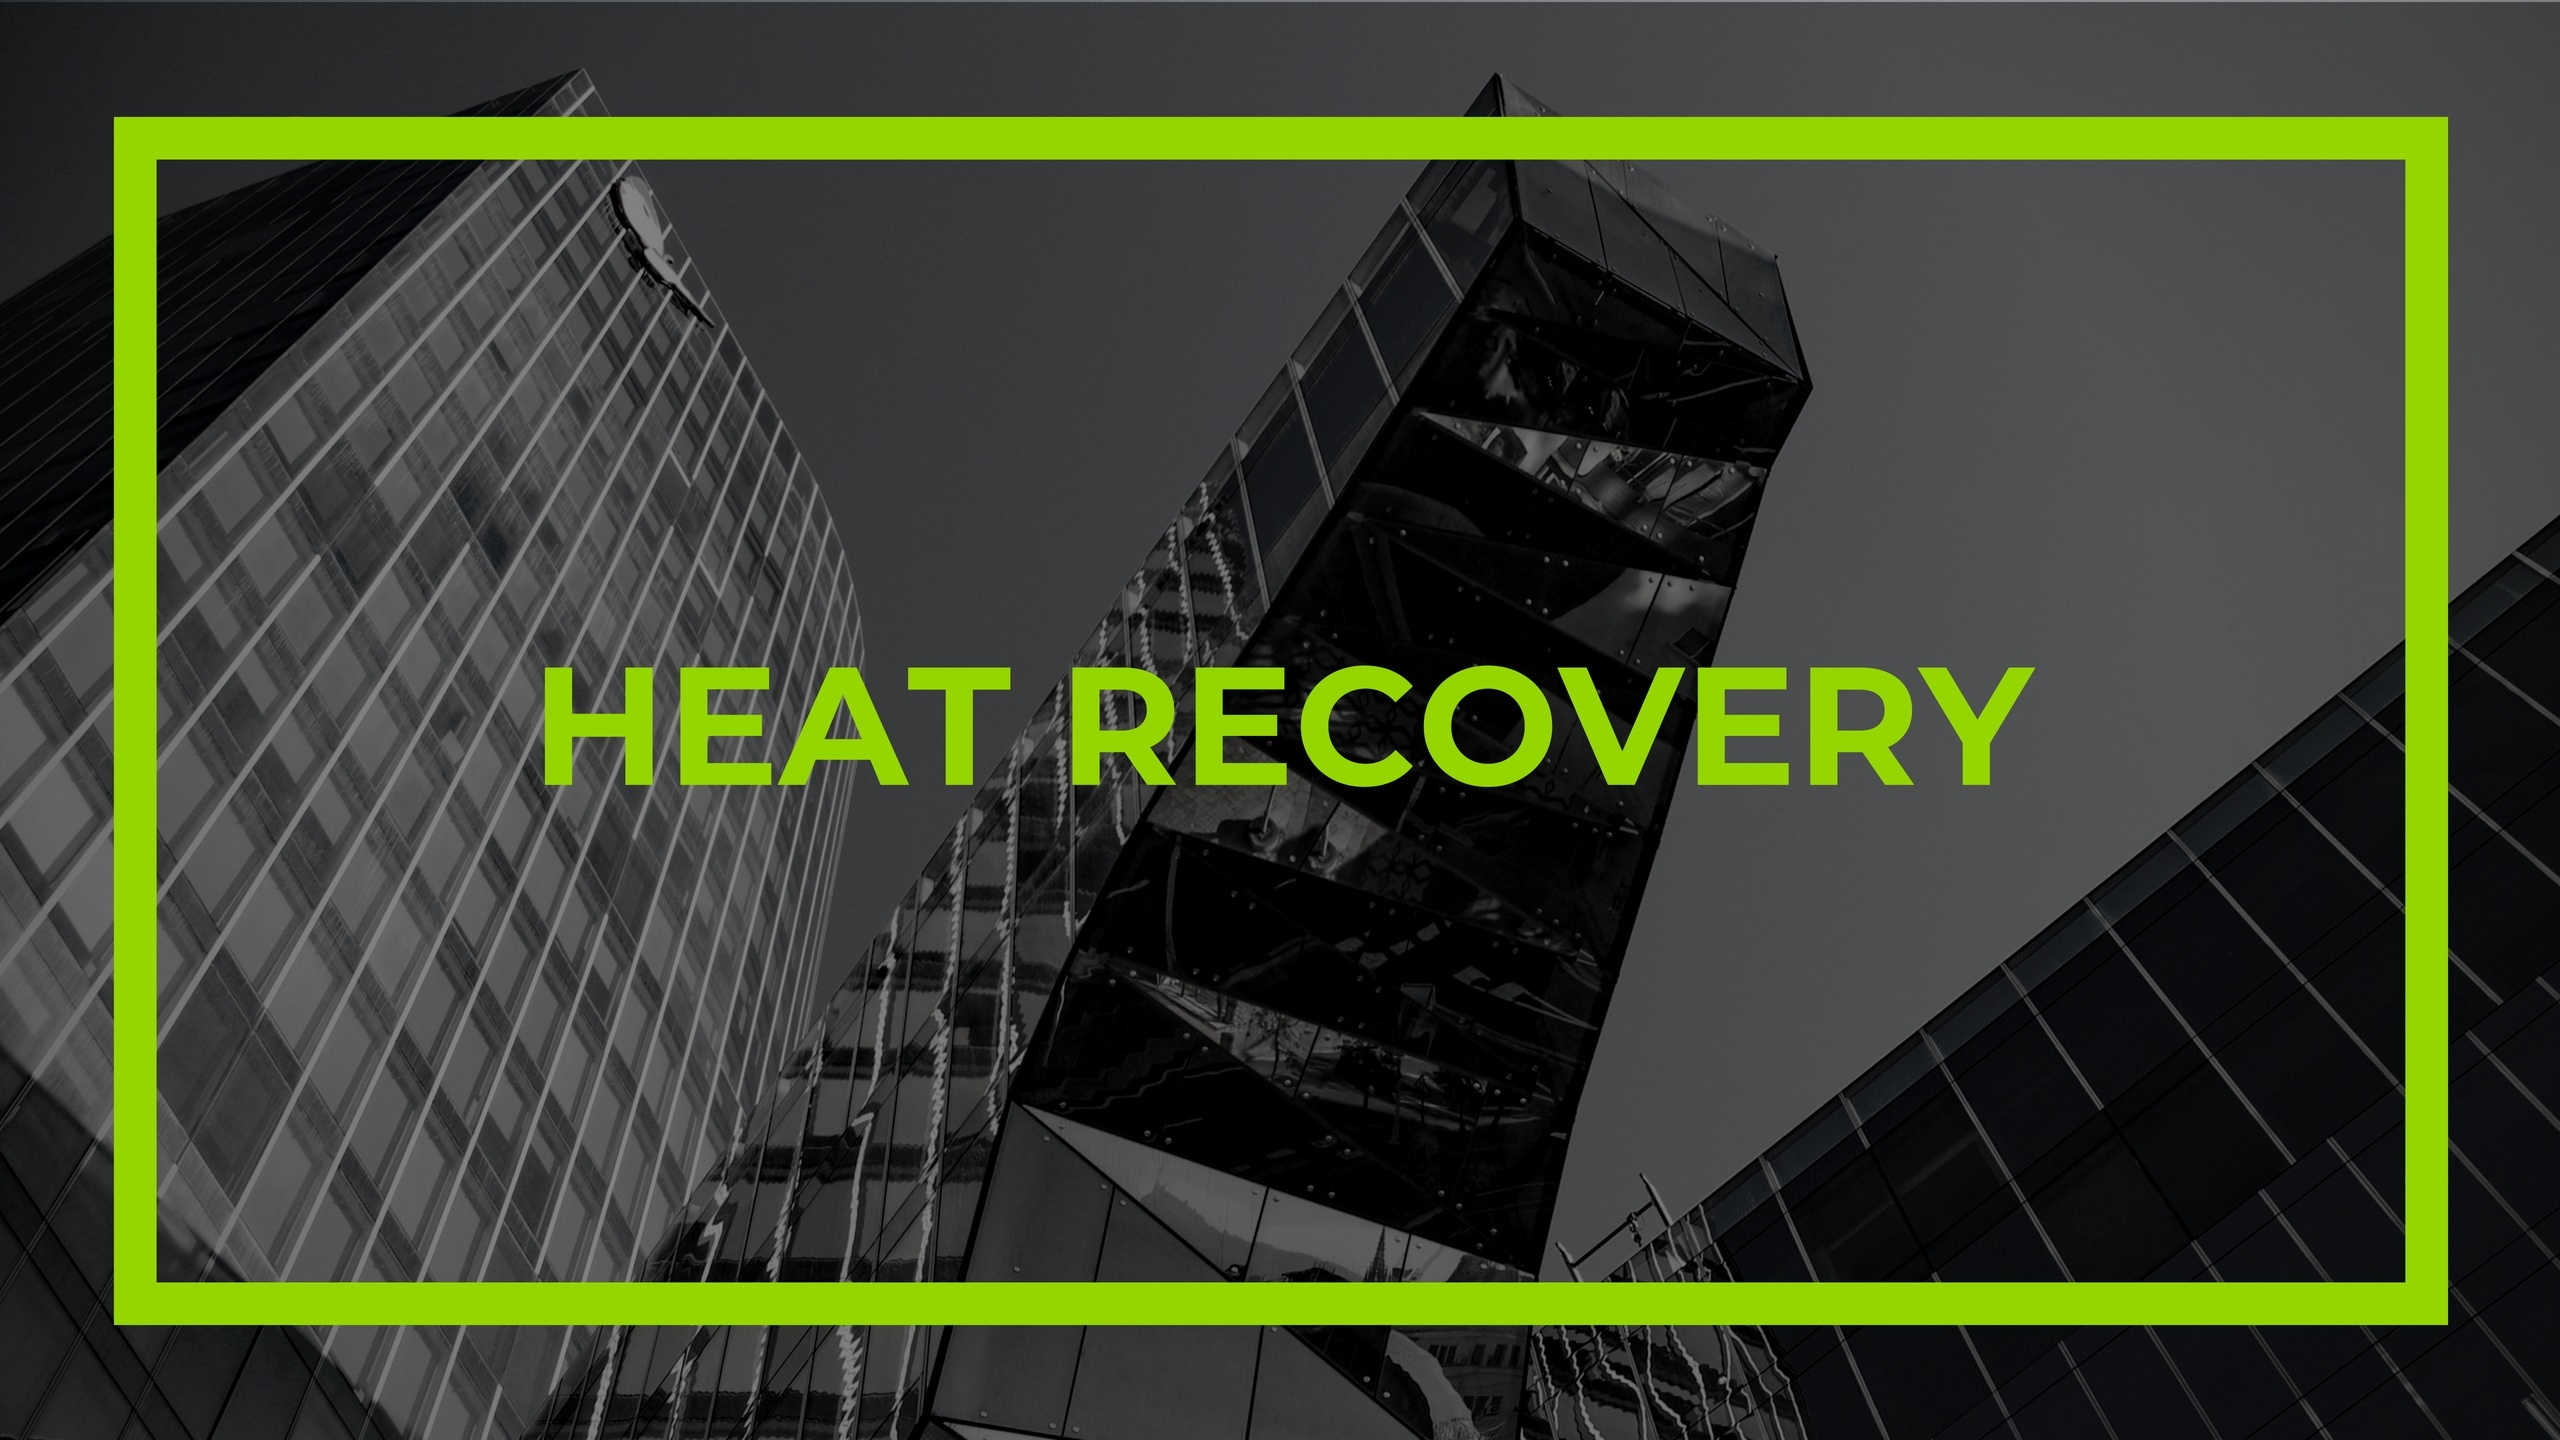 About Aermec Heat Recovery